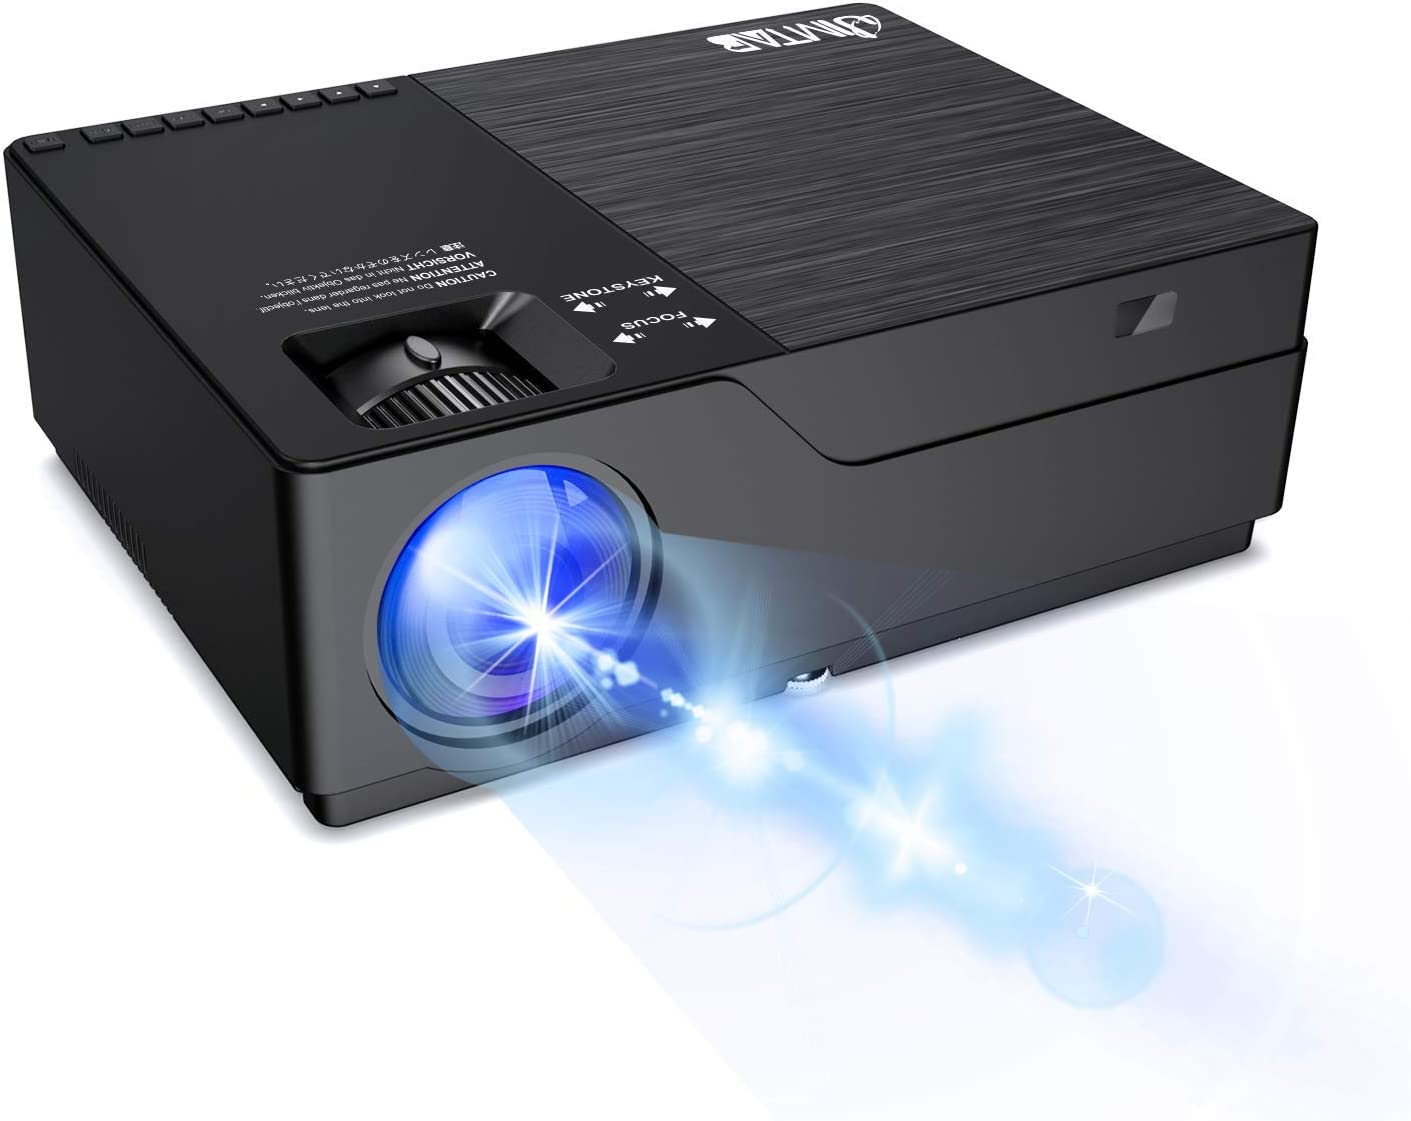 """JIMTAB M18 Native 1080P LED Video Projector, Upgraded HD Projector with 300""""Display Support AV,VGA,USB,HDMI, Compatible with Xbox,Laptop,iPhone and Android for Academic Display (Dark Star)"""